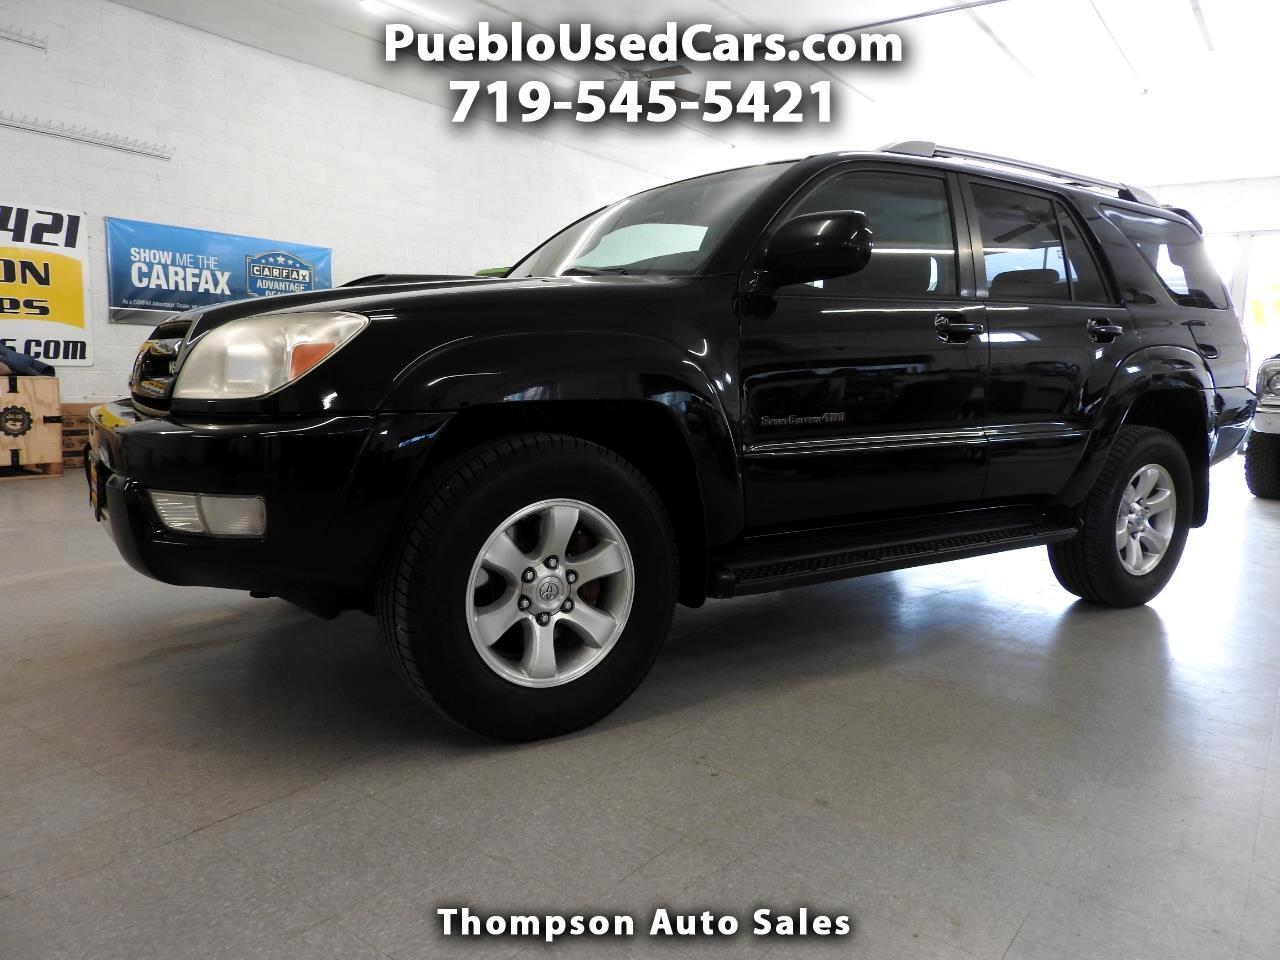 Cars For Sale In Pueblo >> Used 2005 Toyota 4runner Sport Edition V8 4wd For Sale In